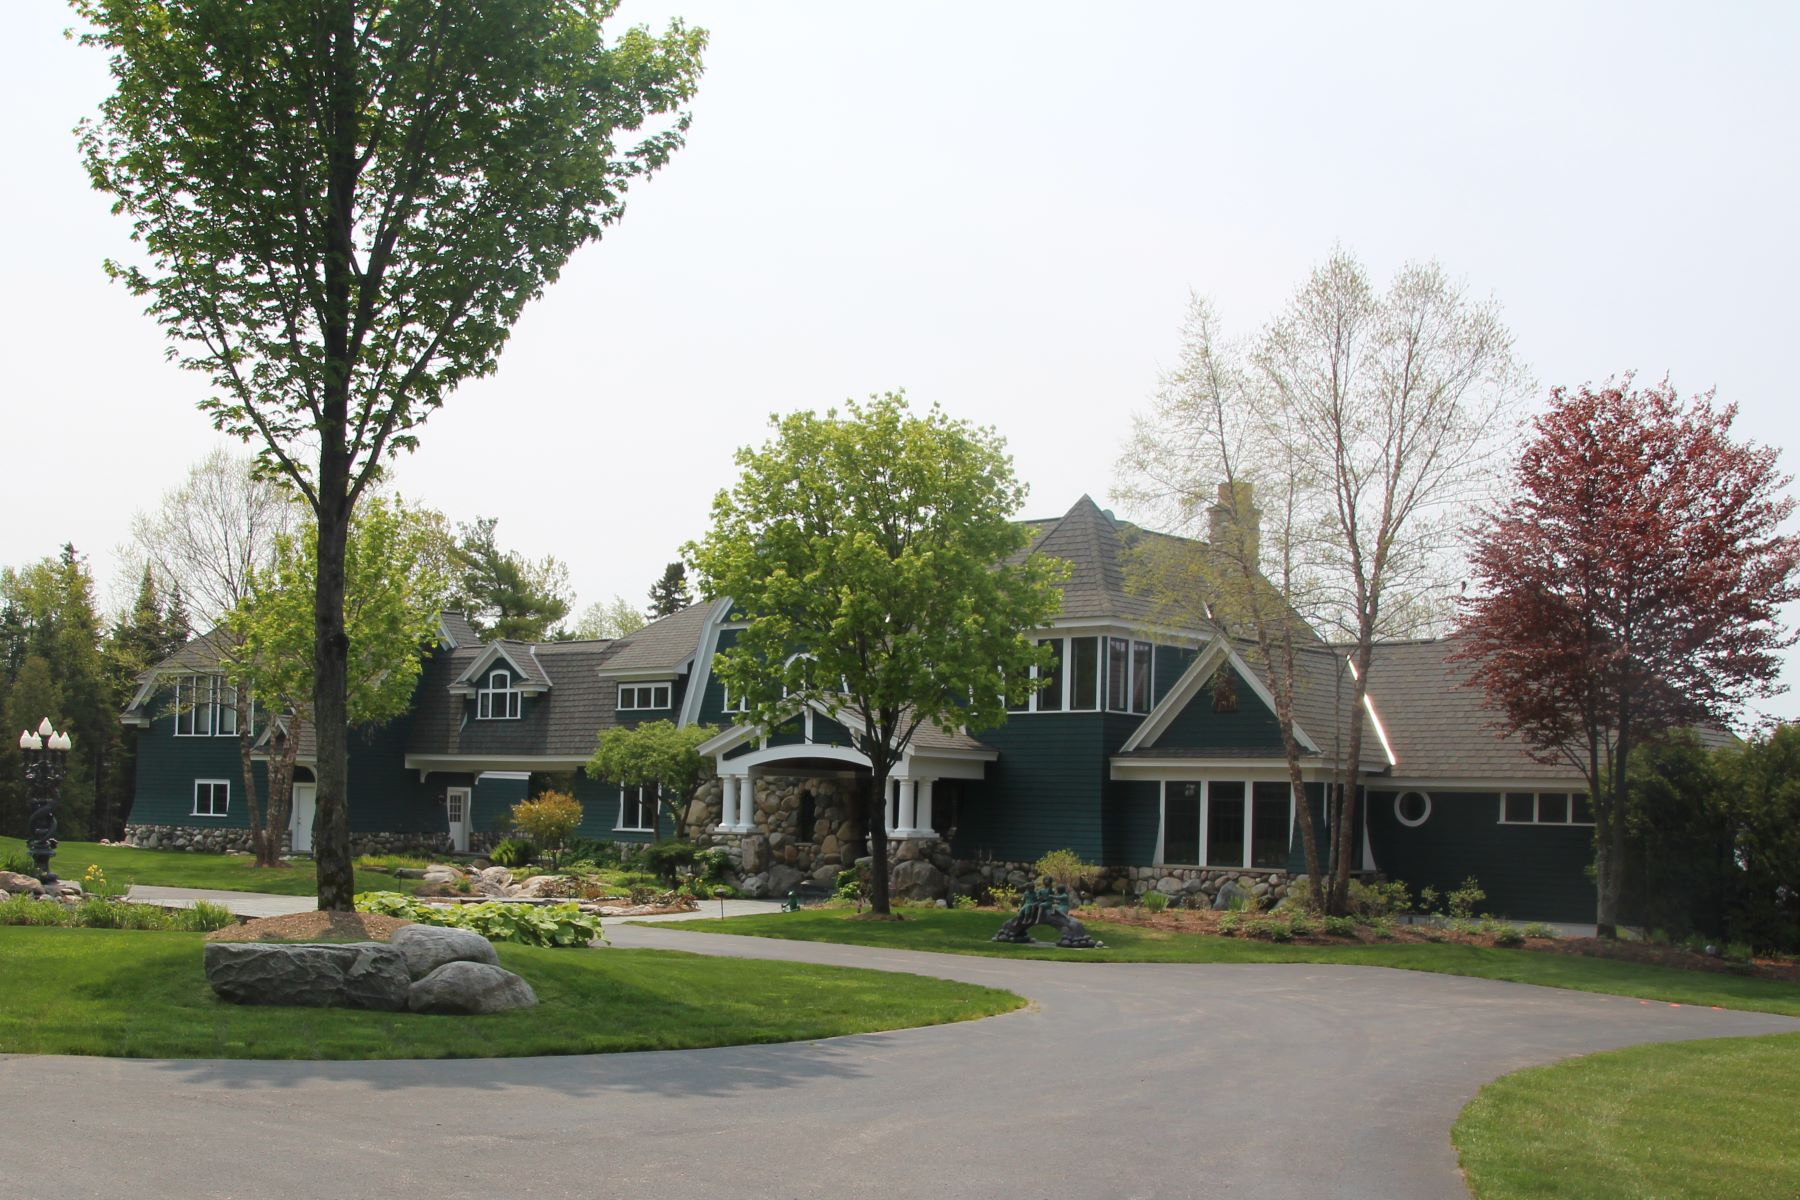 Single Family Homes for Active at Stunning location on Lake Charlevoix sits this custom built home 07575 Indian Trails Charlevoix, Michigan 49720 United States